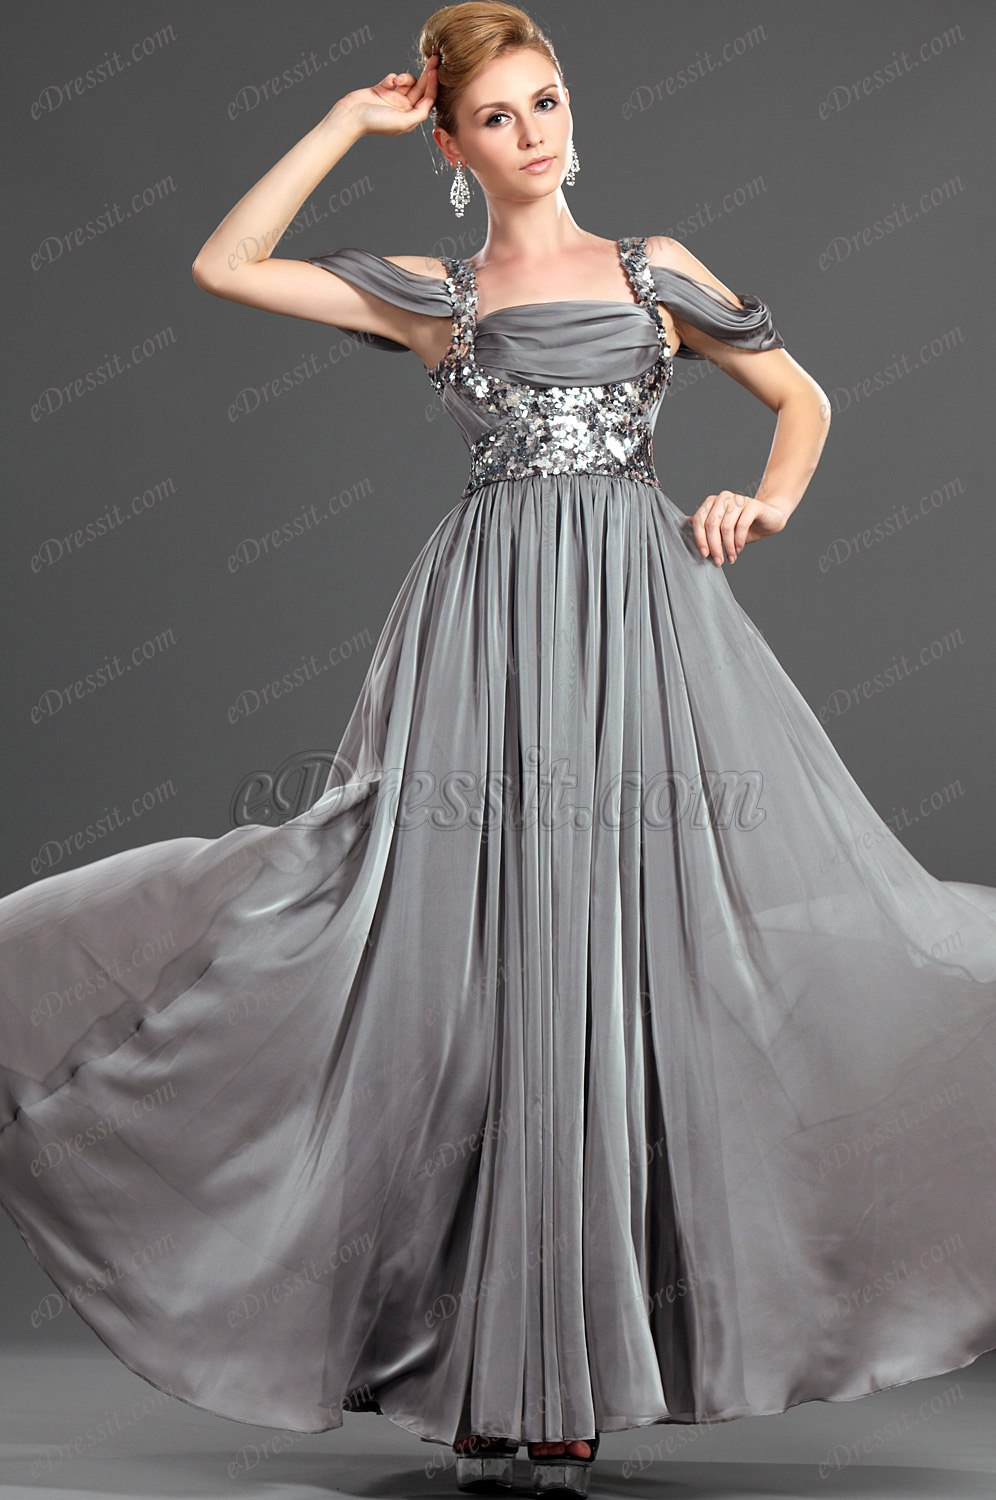 On Sale Fashionable Sequins Evening Dress (00120108B)